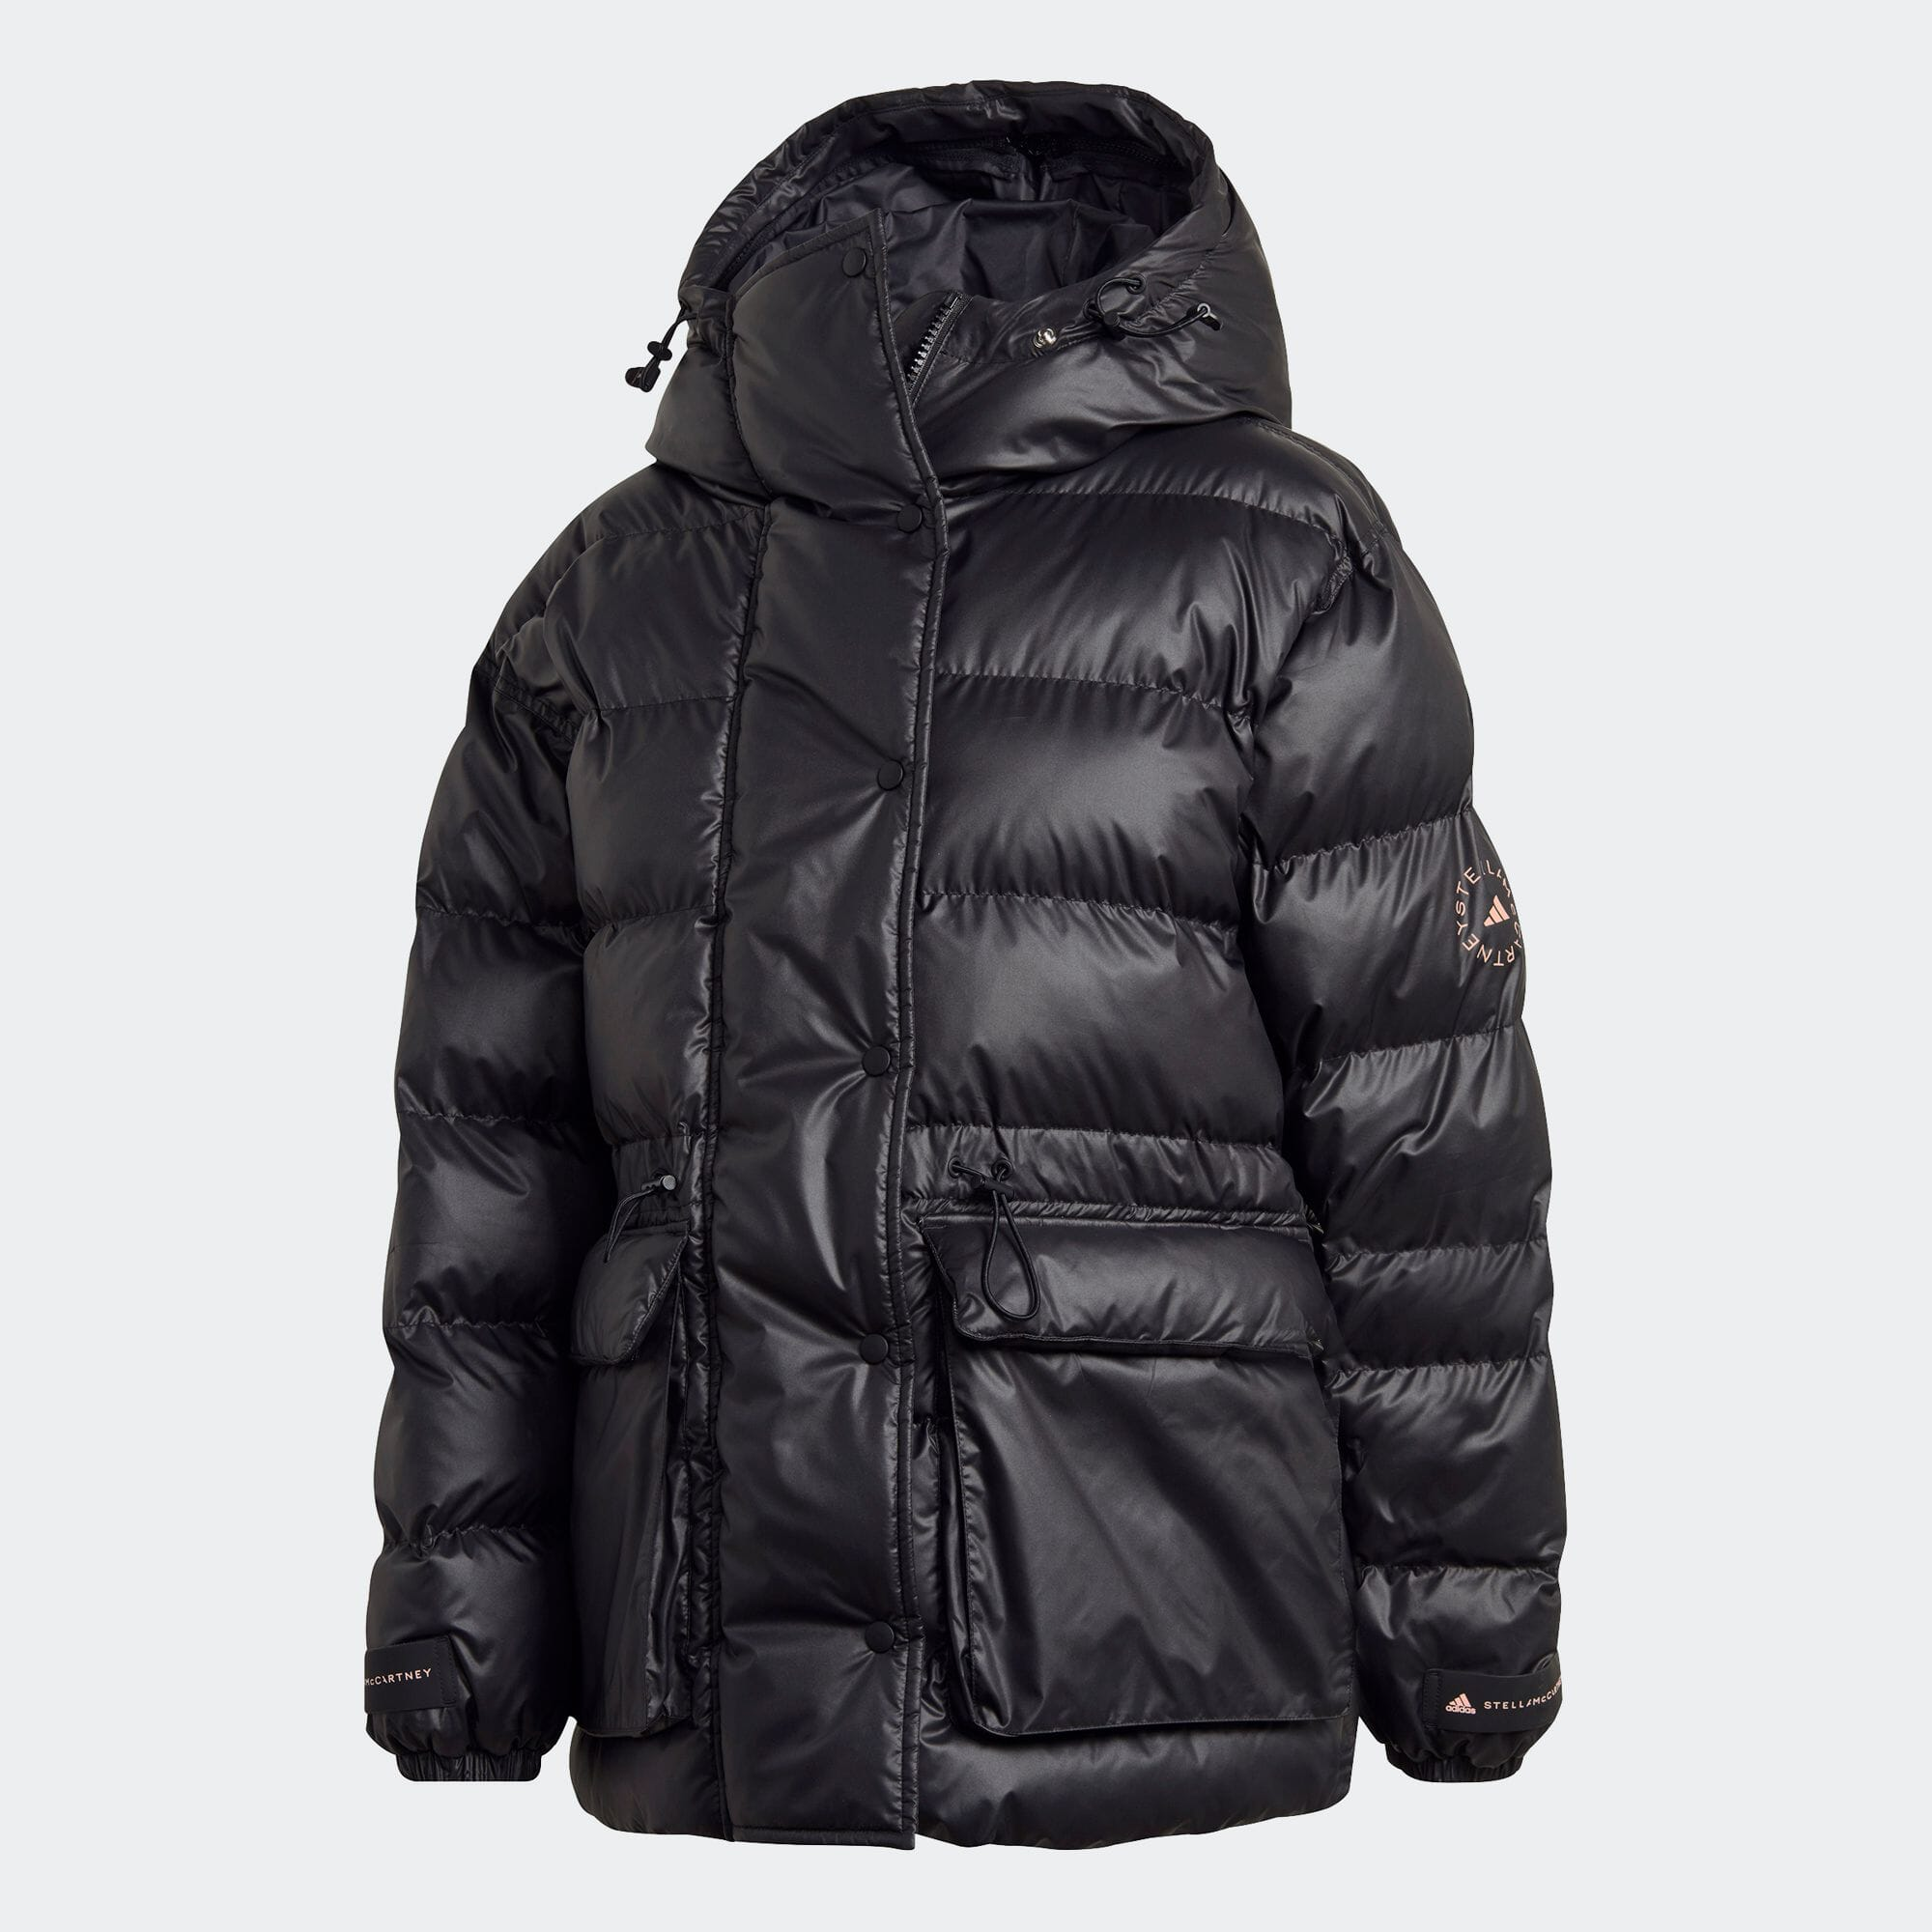 2-in-1 ミッドレングス パデットジャケット / 2-in-1 Mid Length Padded Jacket